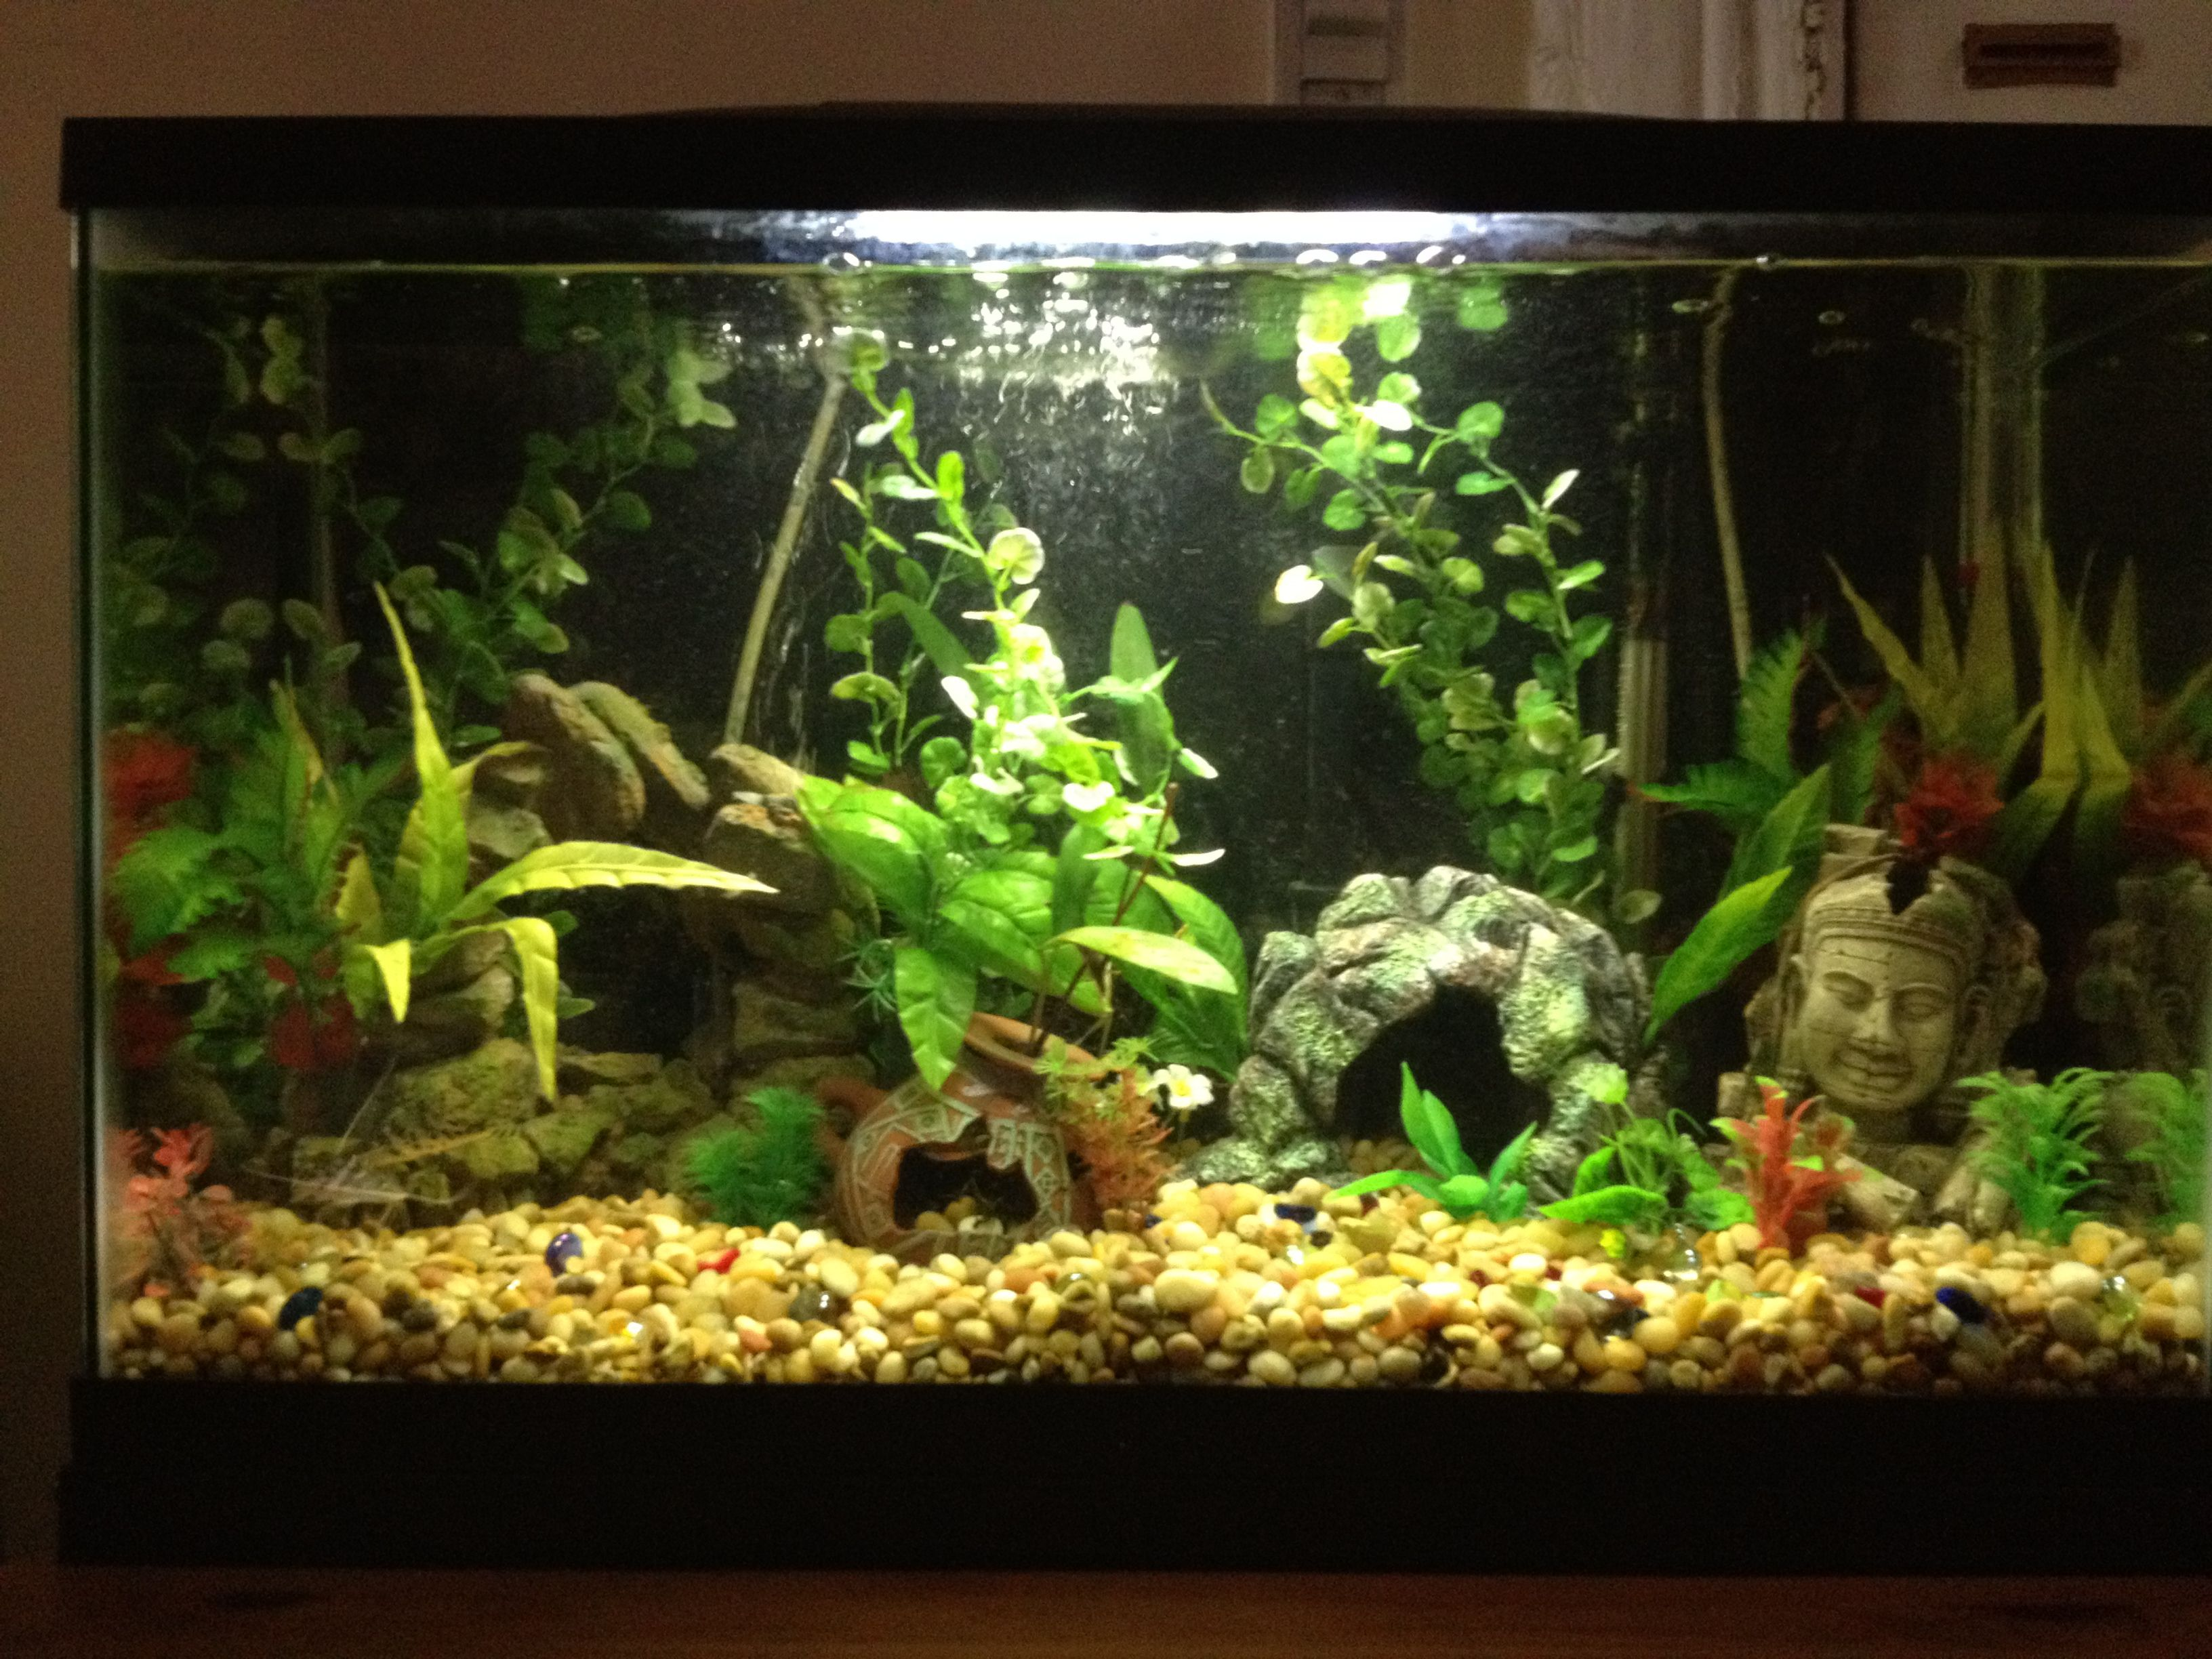 Fish tank decorations zombie - New Amazon Riverbed Fish Tank 29 Gallon Freshwater With 3 Pictus Catfish And A Few